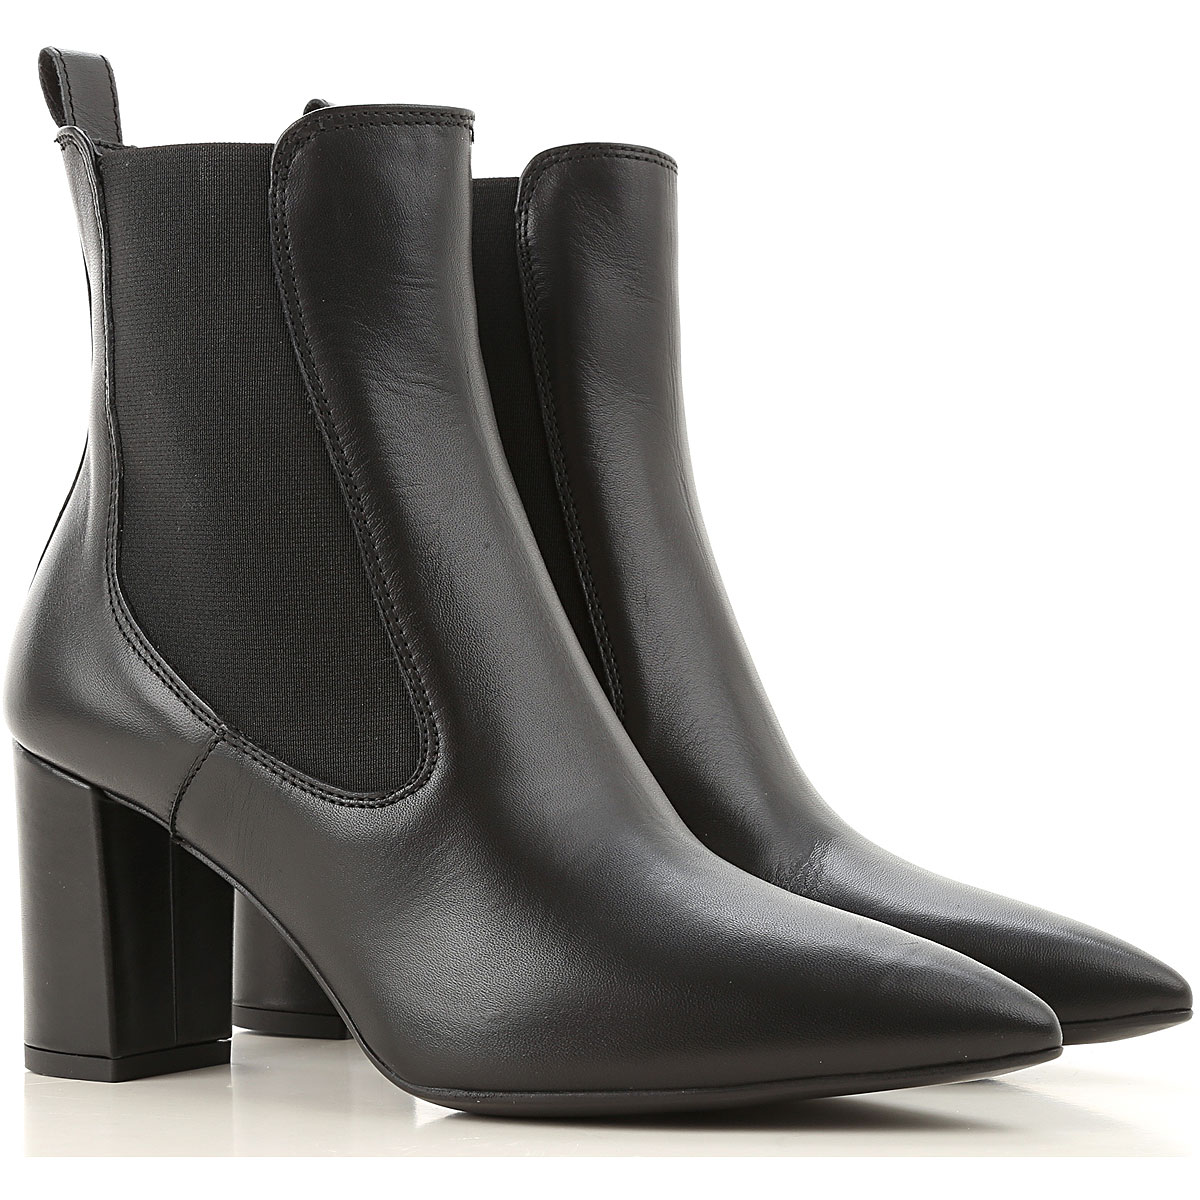 Janet & Janet Chelsea Boots for Women On Sale, Black, Leather, 2019, 10 8 9